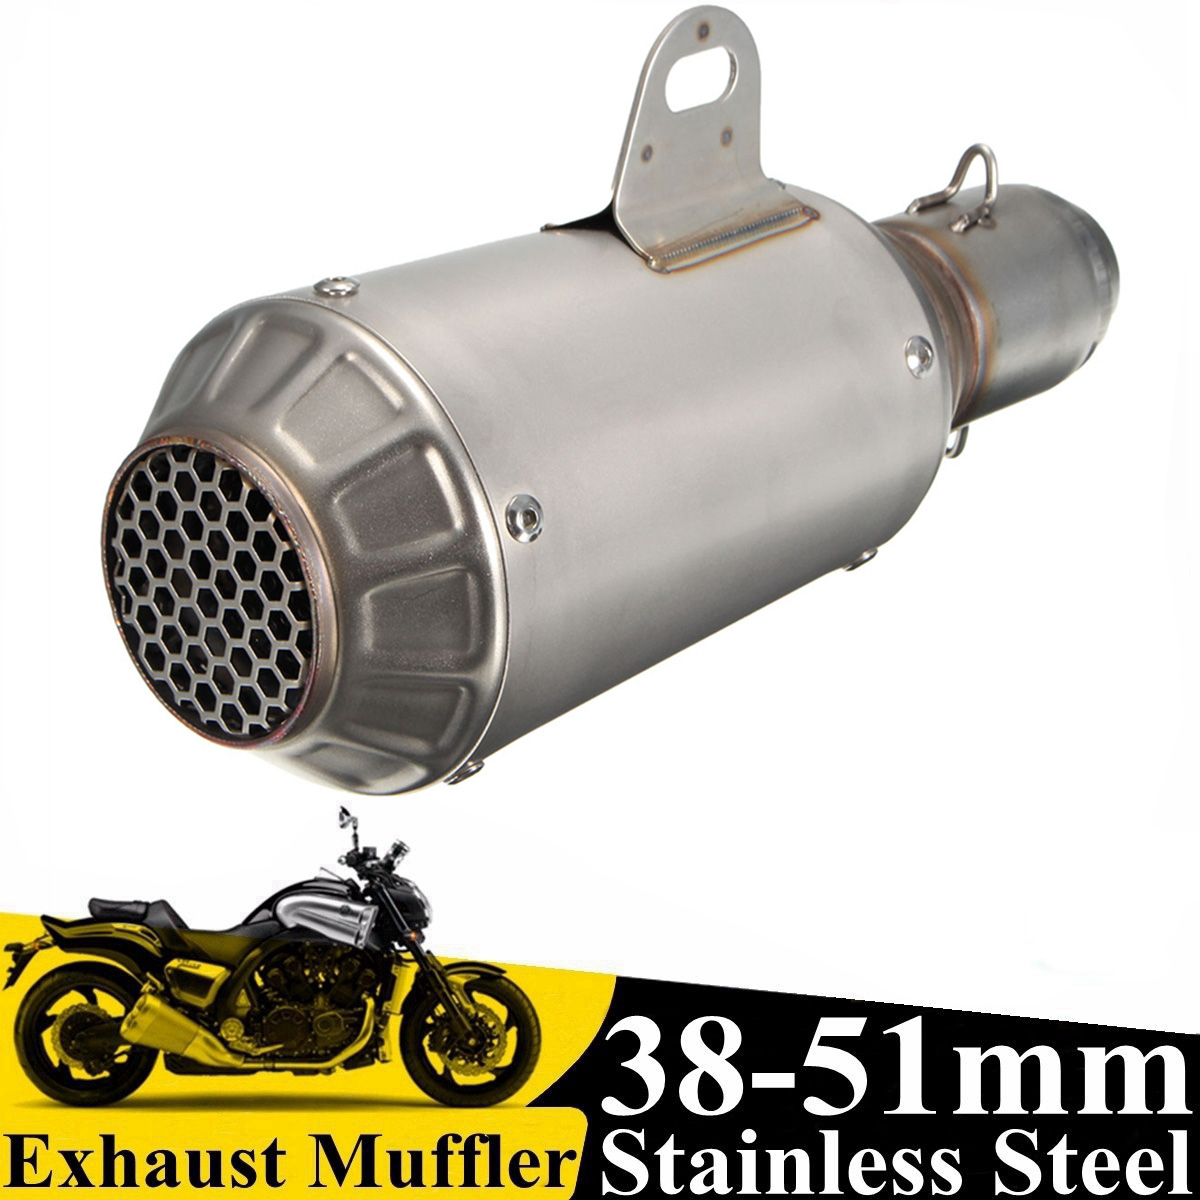 Inlet 51mm Motorcycle Exhaust Pipe Muffler Stainless Steel SC GP Racing Project Exhaust Mufflers Carbon Fiber